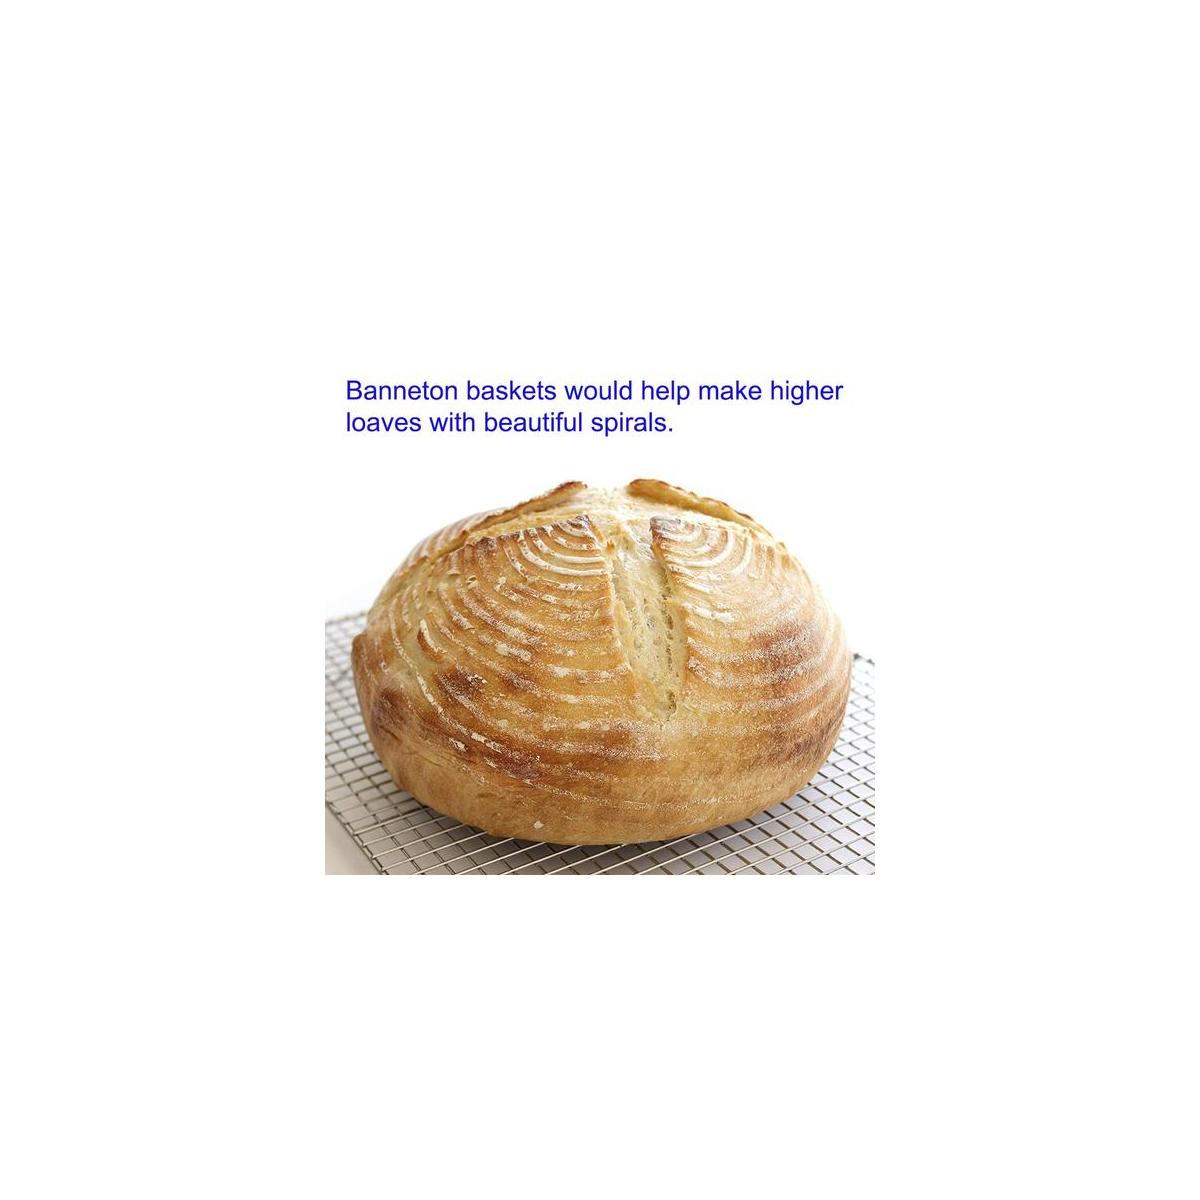 Sourdough Proofing Bowl for Homemade Dough Bread Durability Smooth Proofing Baskets 9 Inch Round Proofing Baskets Handmade Banneton Proofing Baskets Round Zero Splintering Proofing Baskets